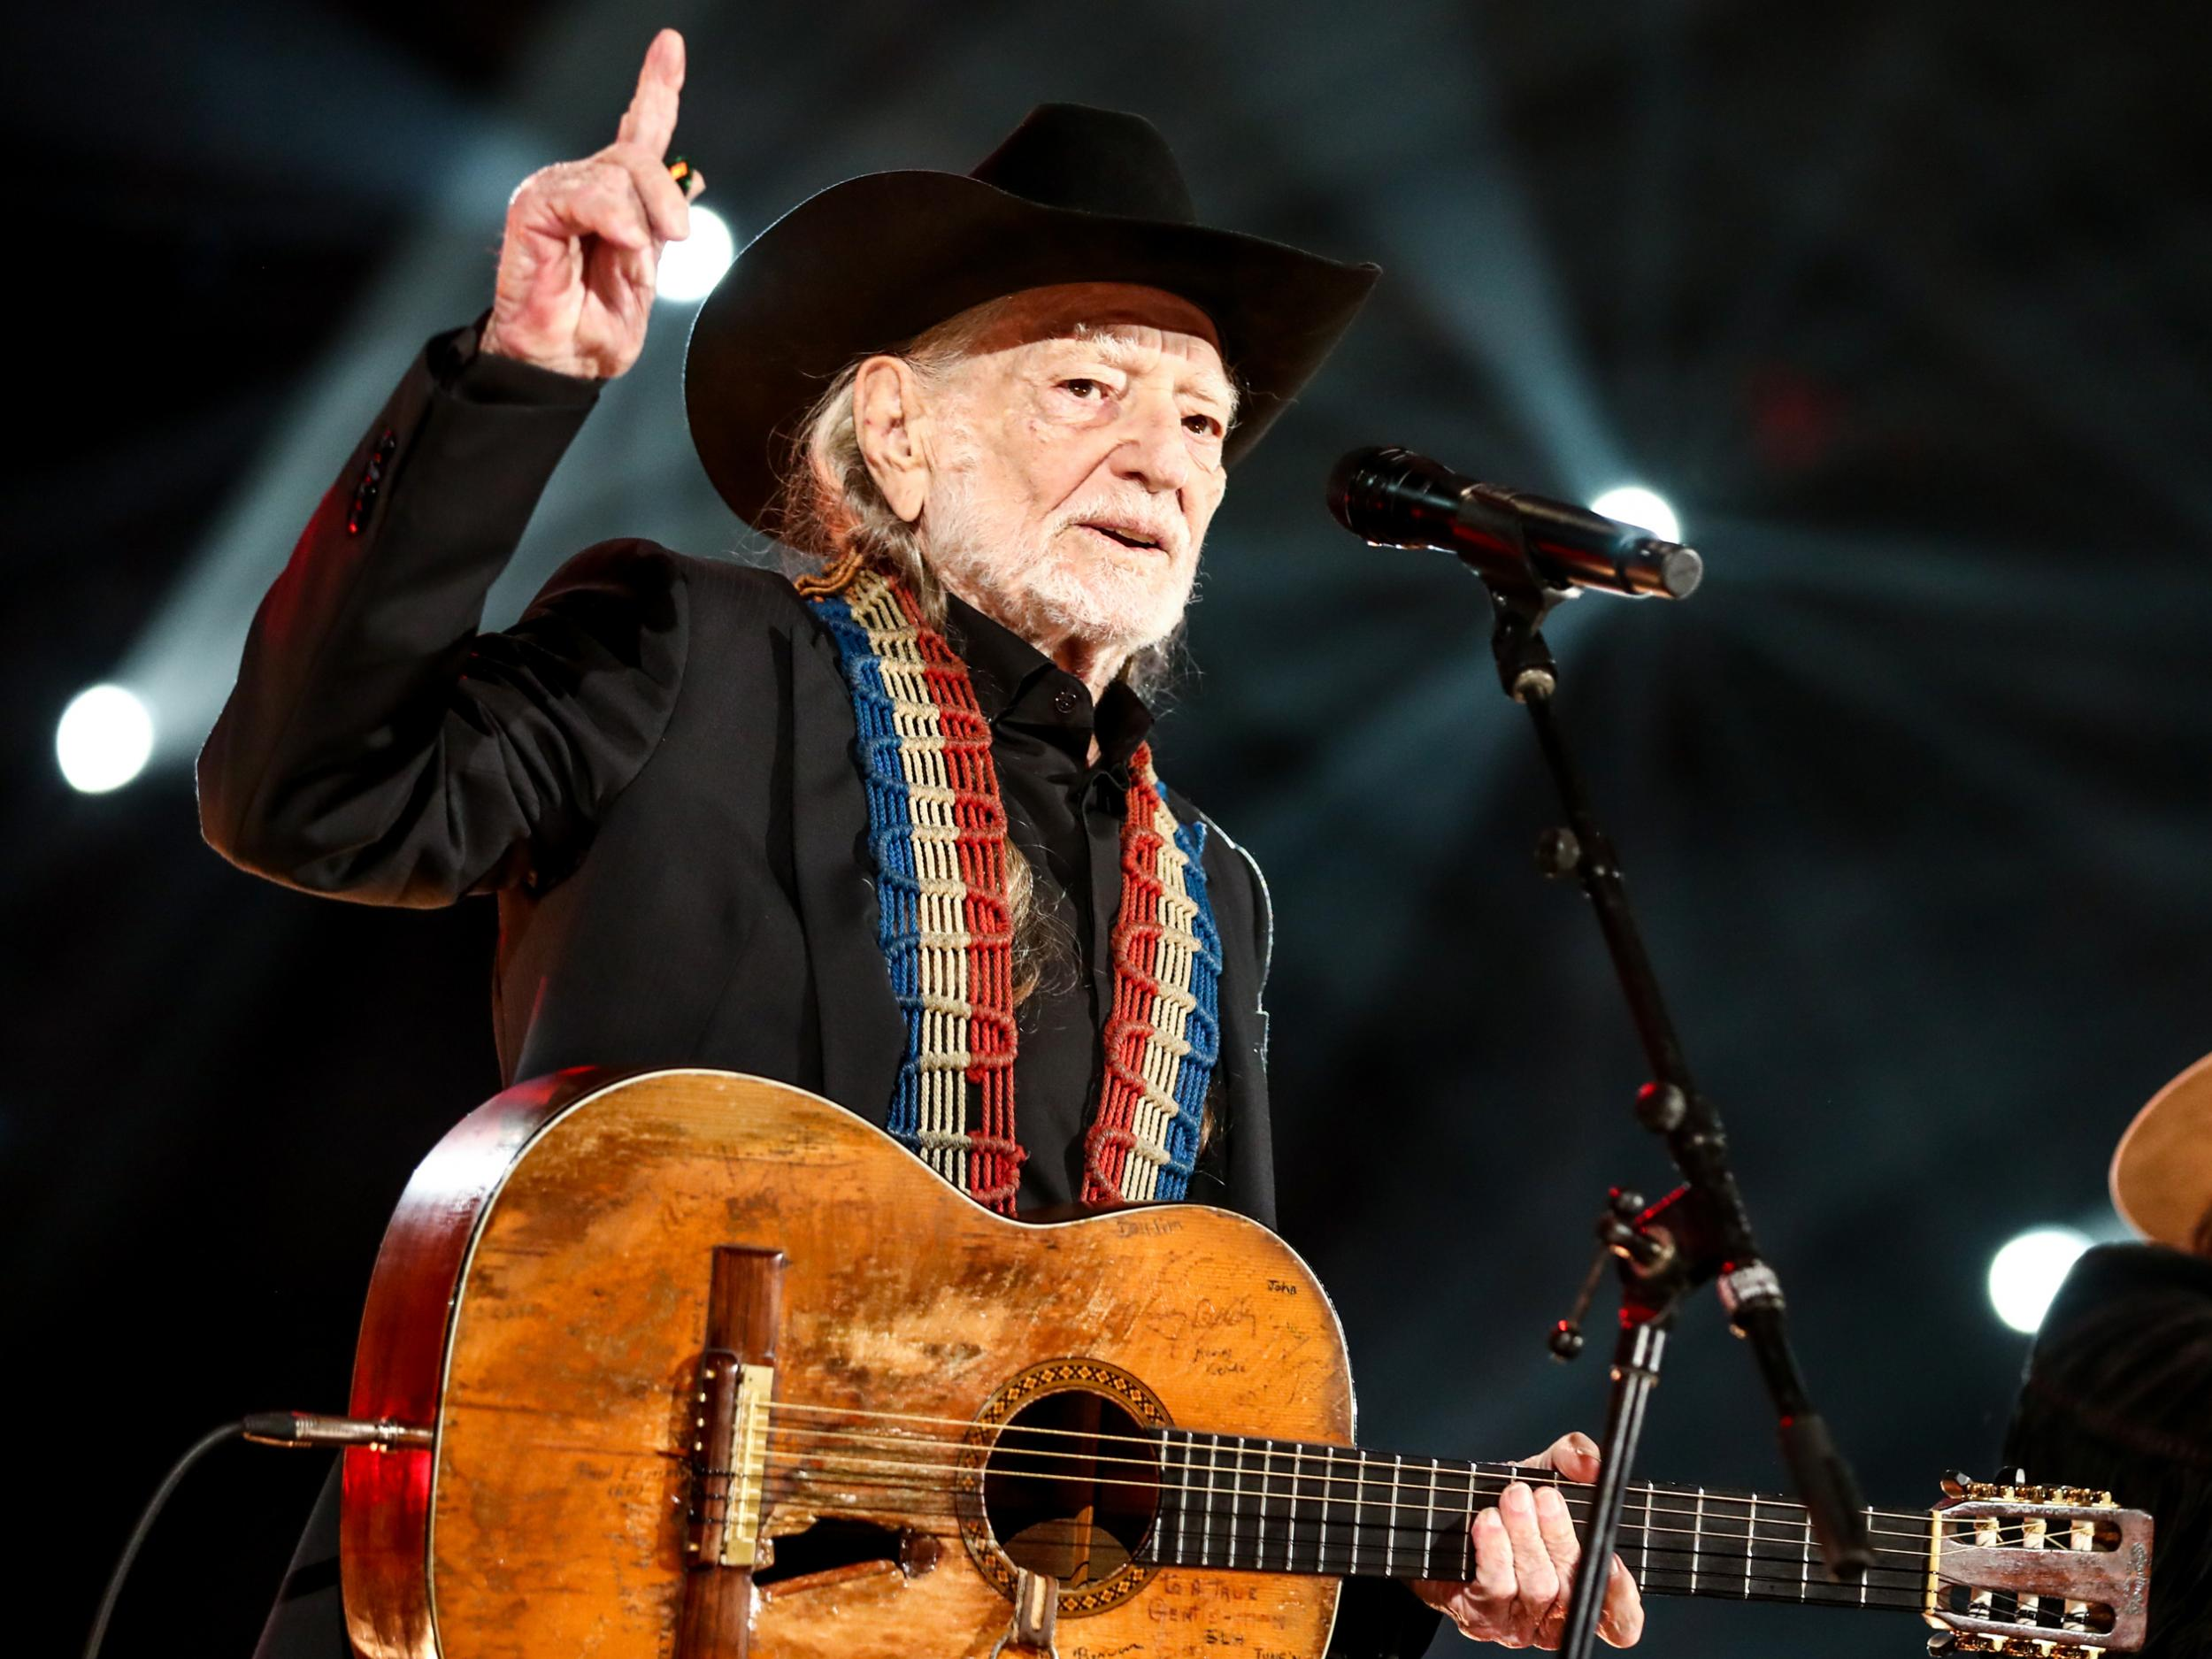 willie nelson on the road again mp3willie nelson on the road again, willie nelson crazy, willie nelson слушать, willie nelson скачать, willie nelson always on my mind, willie nelson the scientist, willie nelson on the road again скачать, willie nelson cruel world, willie nelson on the road again перевод, willie nelson feat. paula nelson, willie nelson whiskey river, willie nelson paula nelson, willie nelson songs, willie nelson are you sure, willie nelson crazy chords, willie nelson crazy перевод, willie nelson time of the preacher, willie nelson discography, willie nelson википедия, willie nelson on the road again mp3